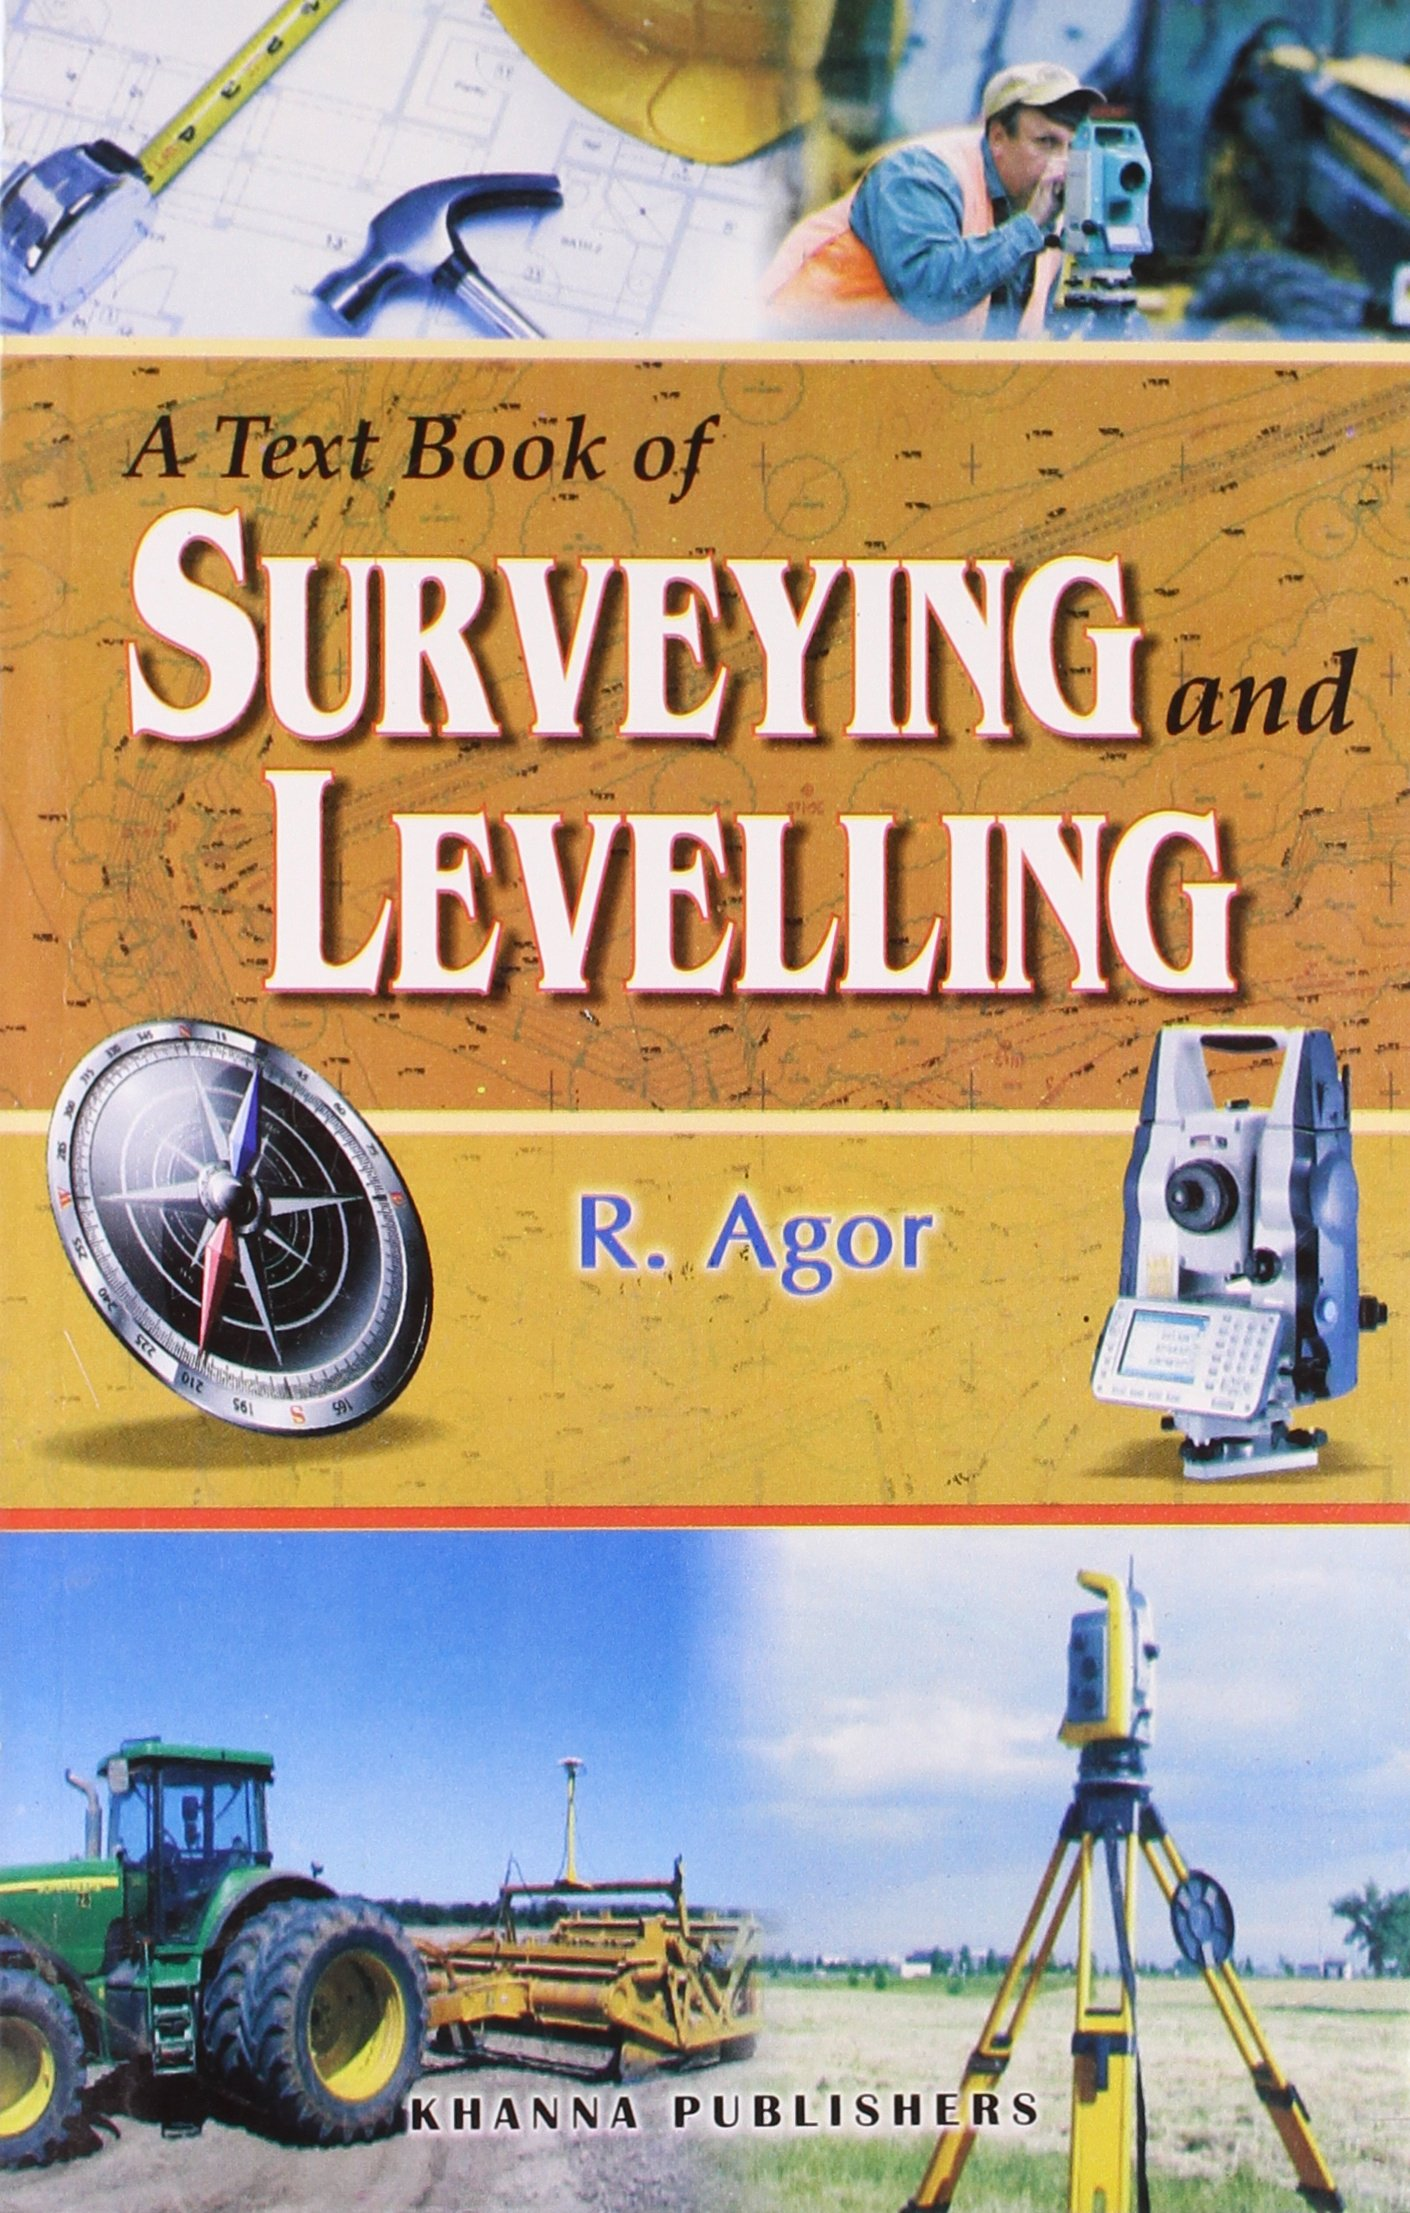 Buy a text book of surveying and levelling book online at low prices buy a text book of surveying and levelling book online at low prices in india a text book of surveying and levelling reviews ratings amazon fandeluxe Gallery